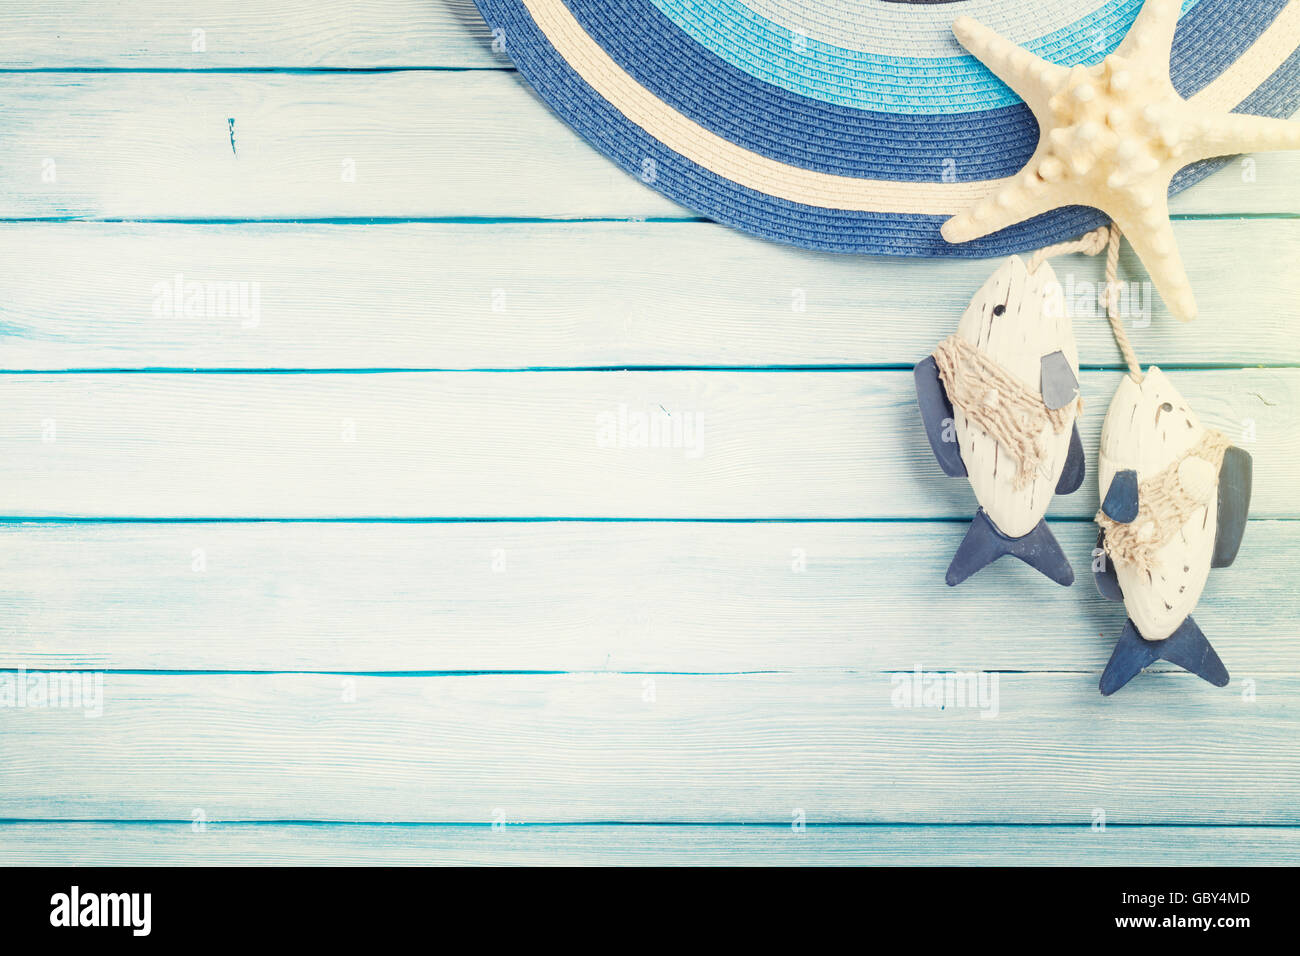 Beach Accessories Hat Starfish And Fish Decor On Wooden